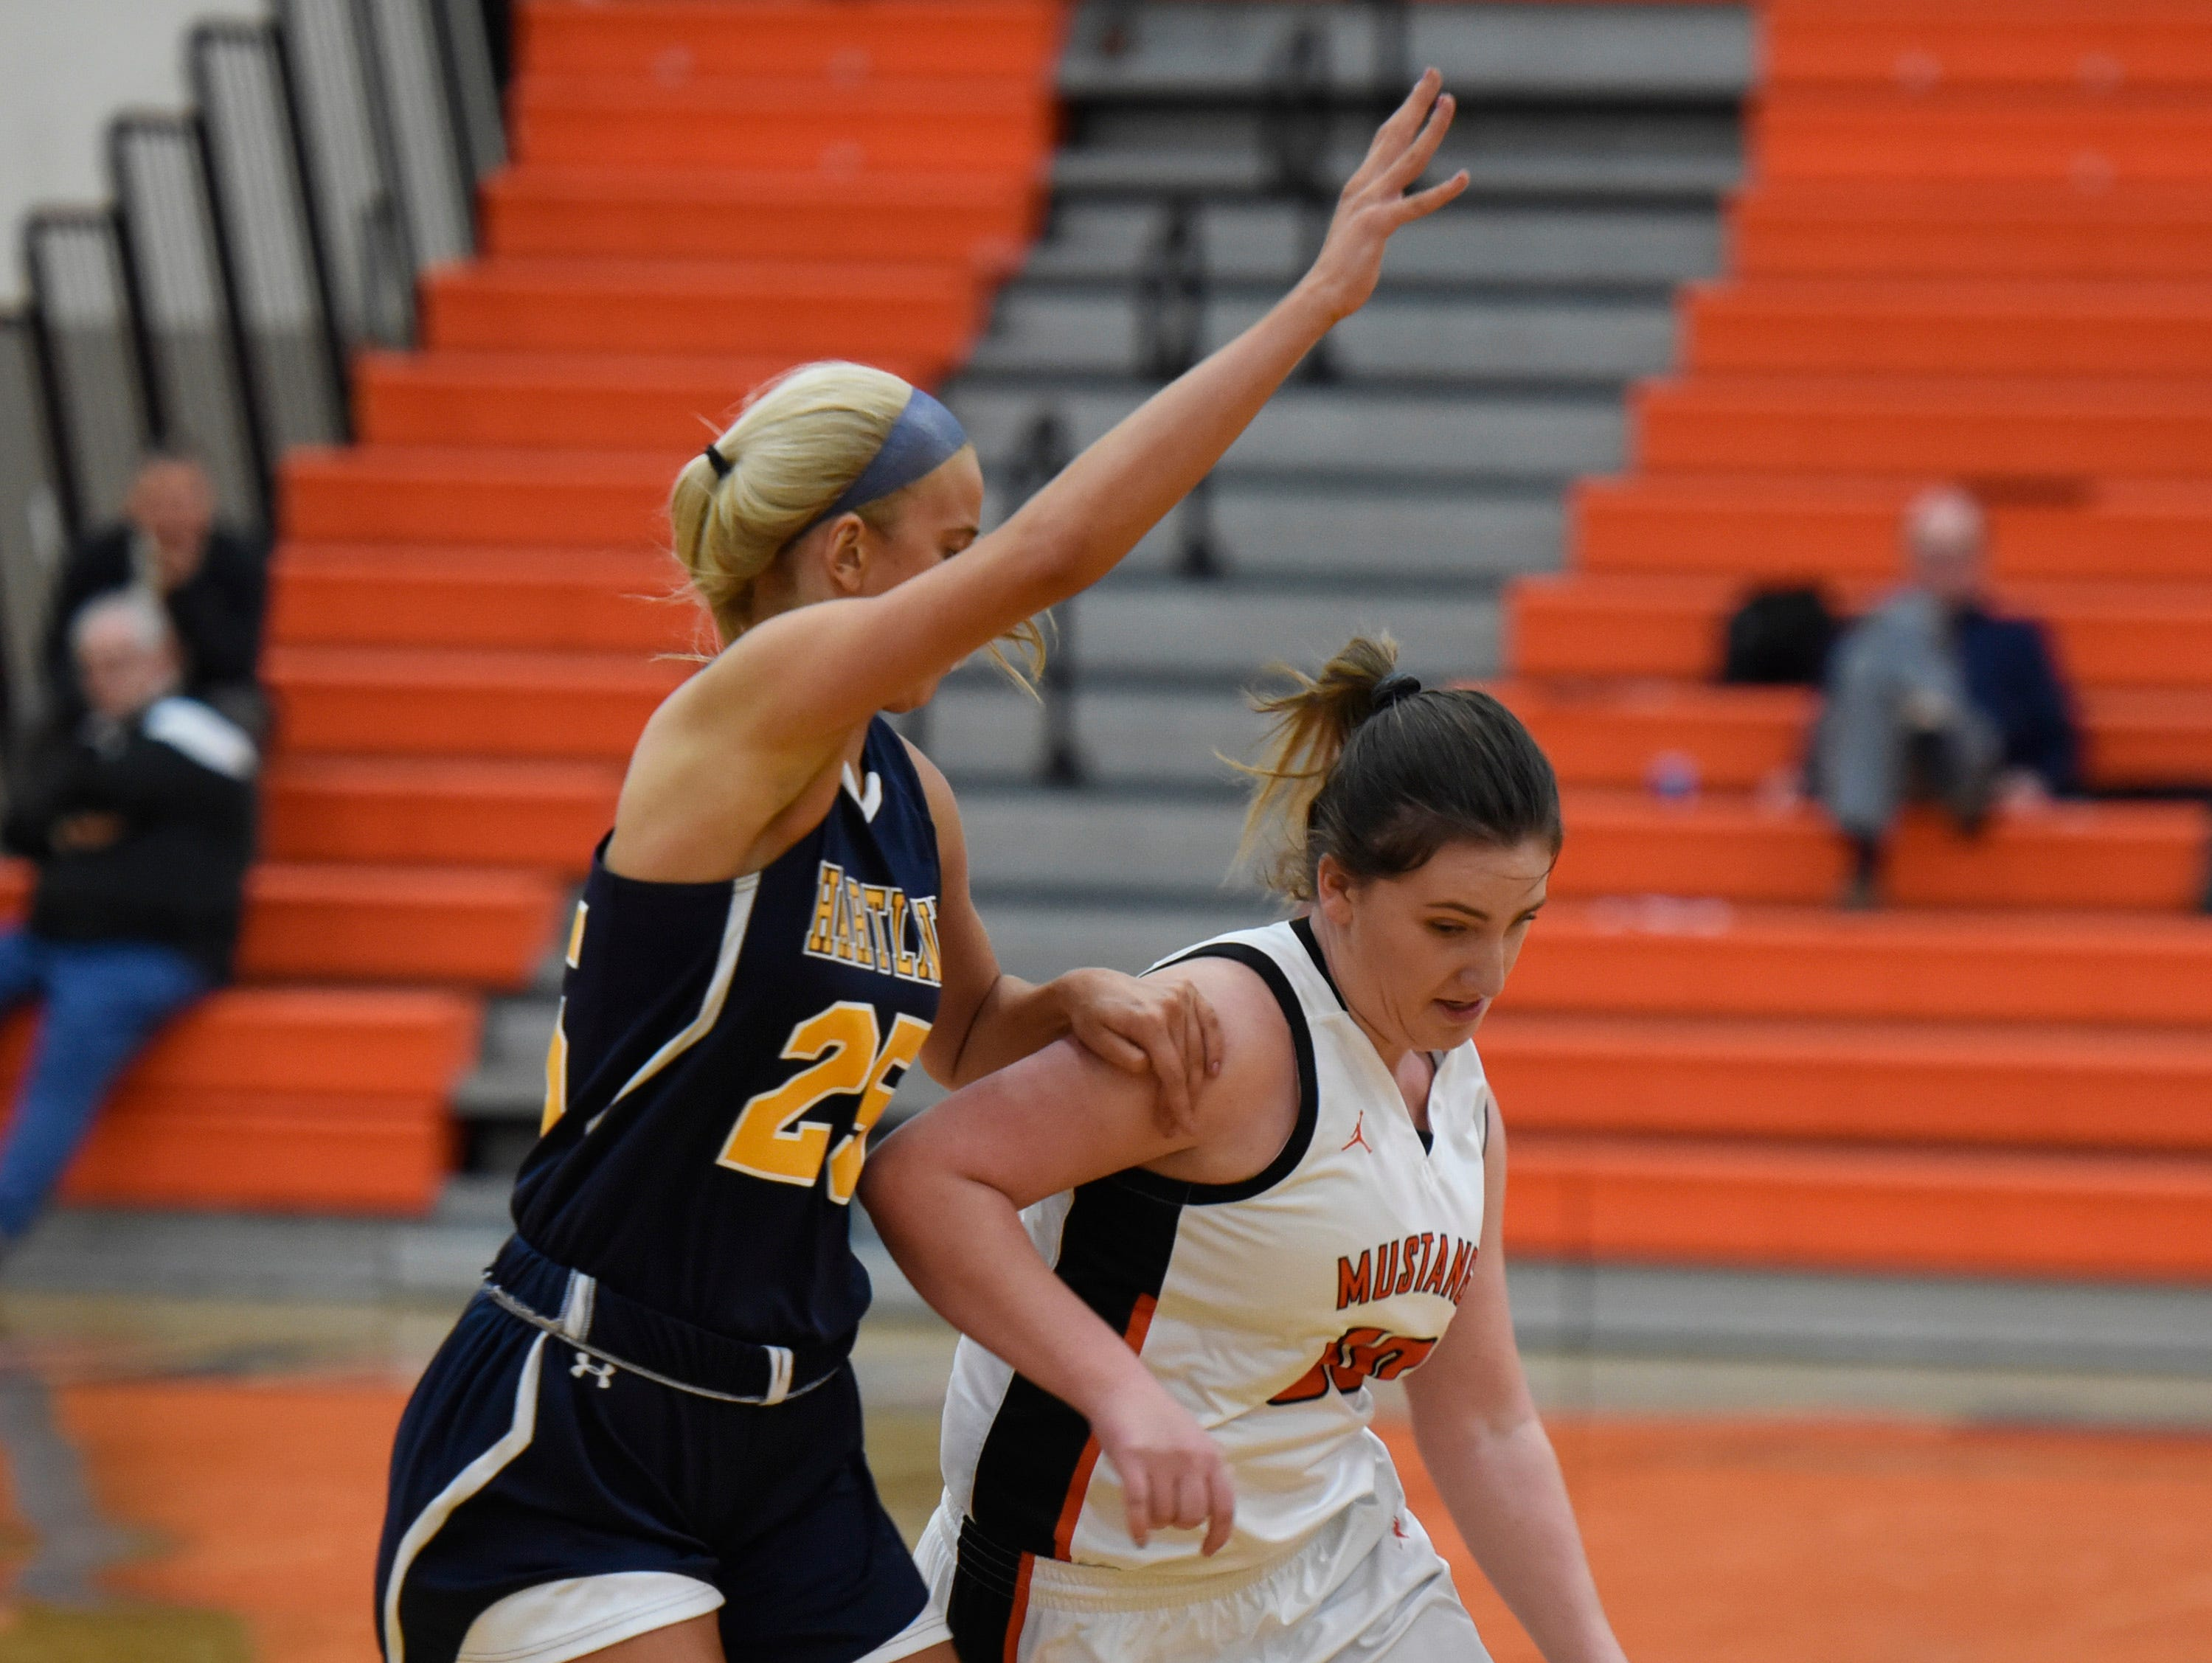 Hartland's Whitney Sollom (25) and Northville's Julia Straky (50) during a KLAA match up between the Mustangs and Eagles at Northville Jan. 8, 2019